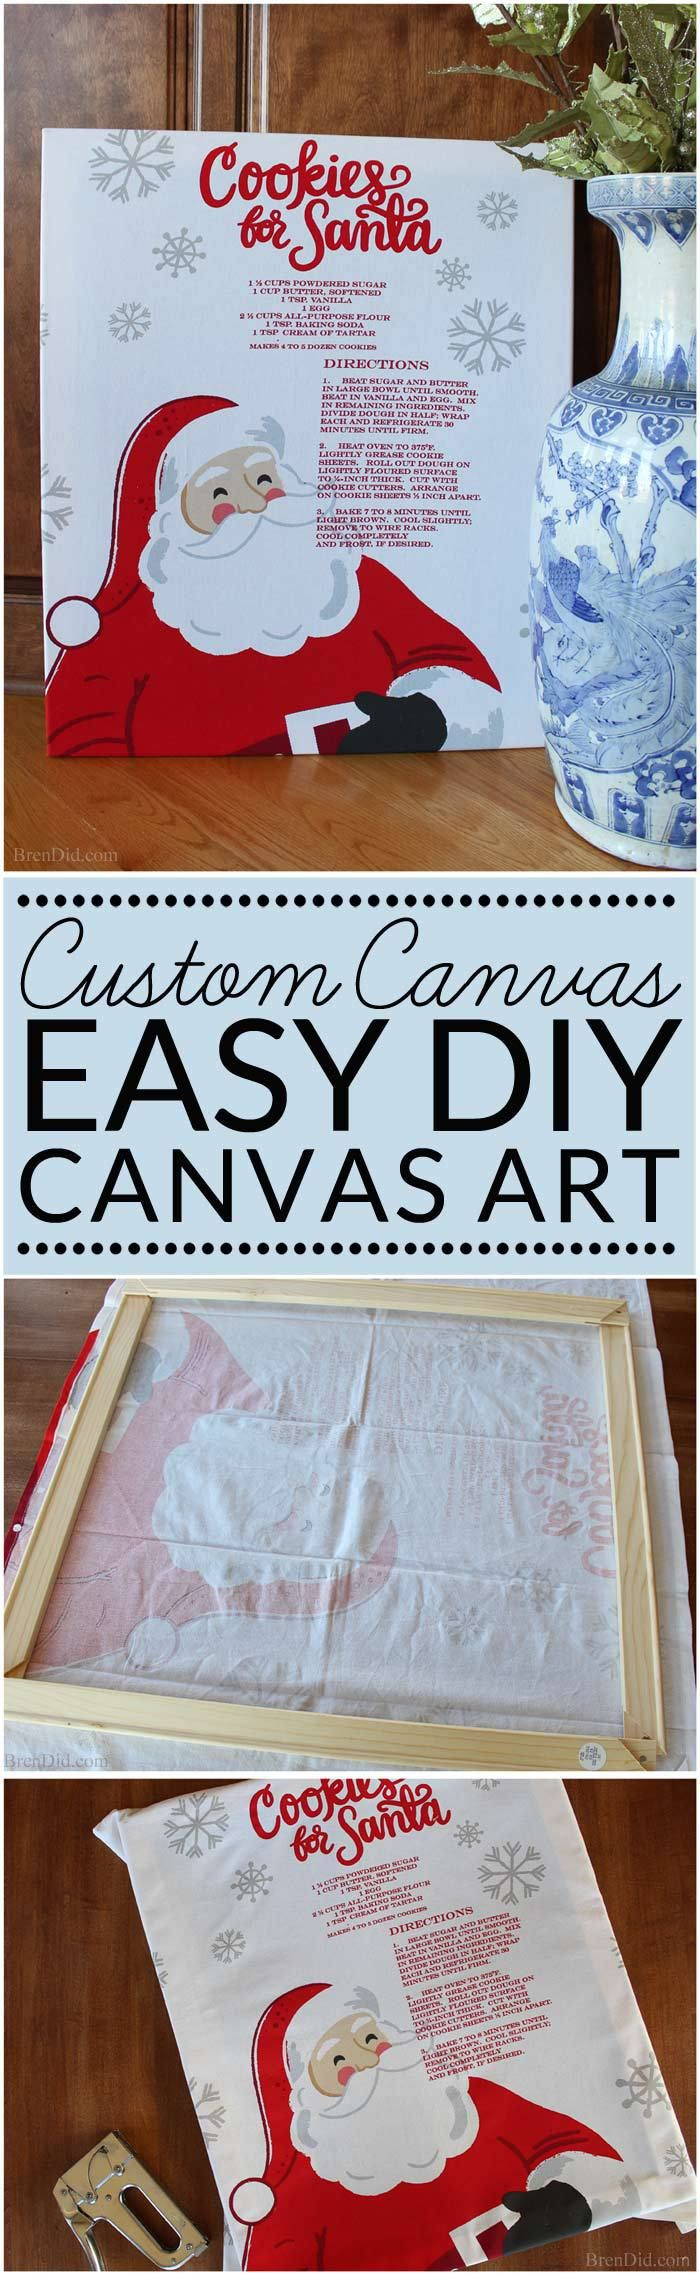 Hometalk diy christmas window decoration - Diy Canvas Art Can Be Customized To Any Season Or Decorating Style Simply